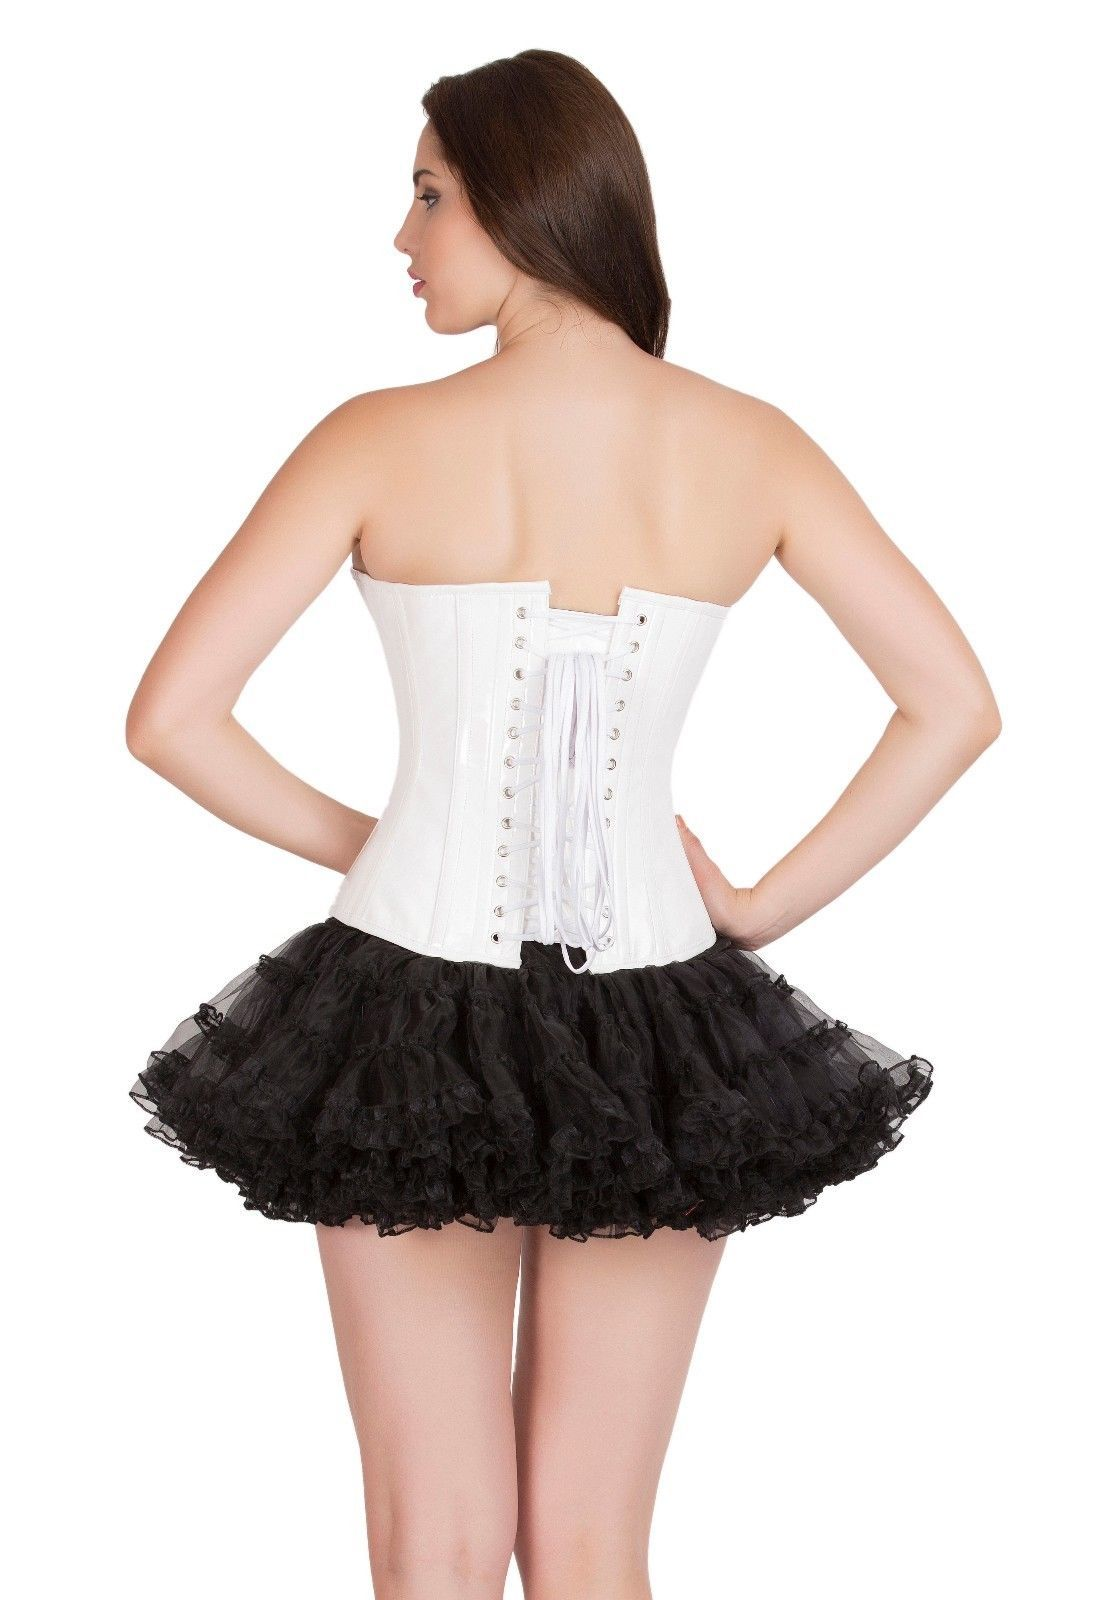 White Leather  Gothic Steampunk Bustier Waist Training Overbust Corset Top